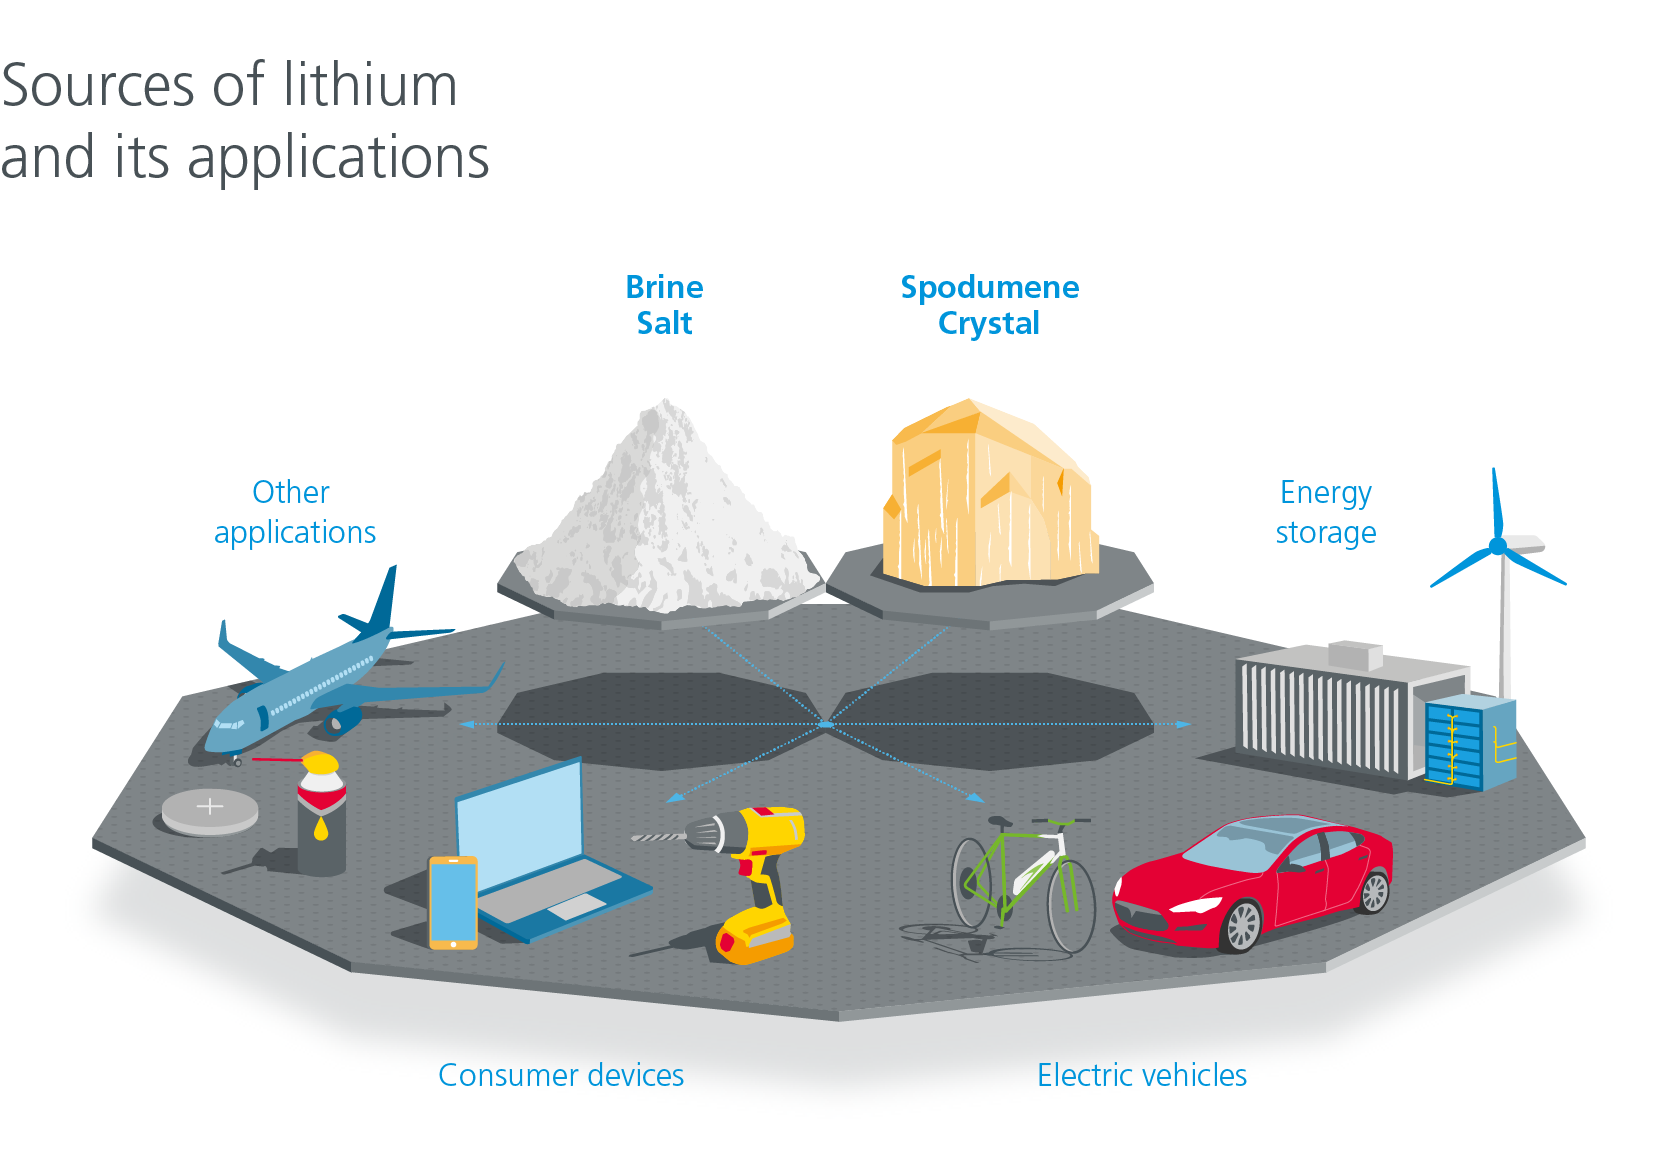 Applications of lithium